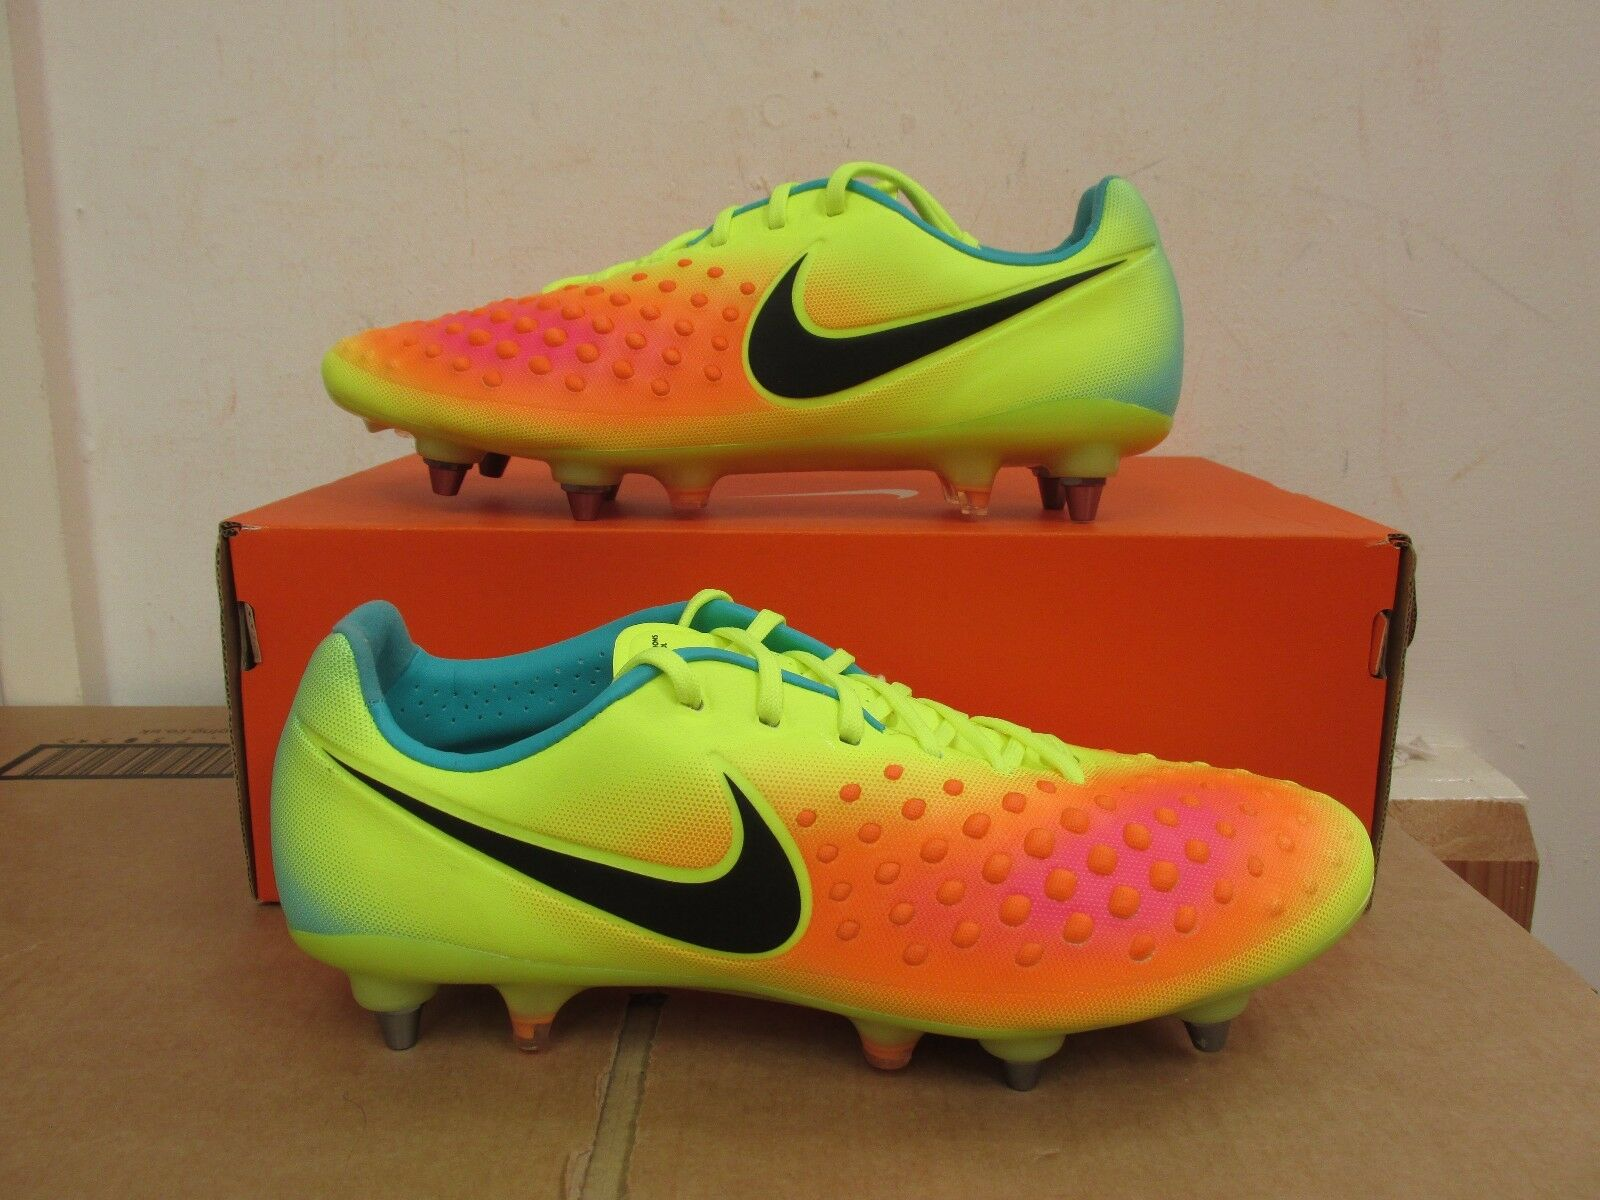 separation shoes 97ae6 a47dc Nike Magista Opus II SG PRO mens football boots 844597 844597 844597 708  soccer CLEARANCE 2ee002